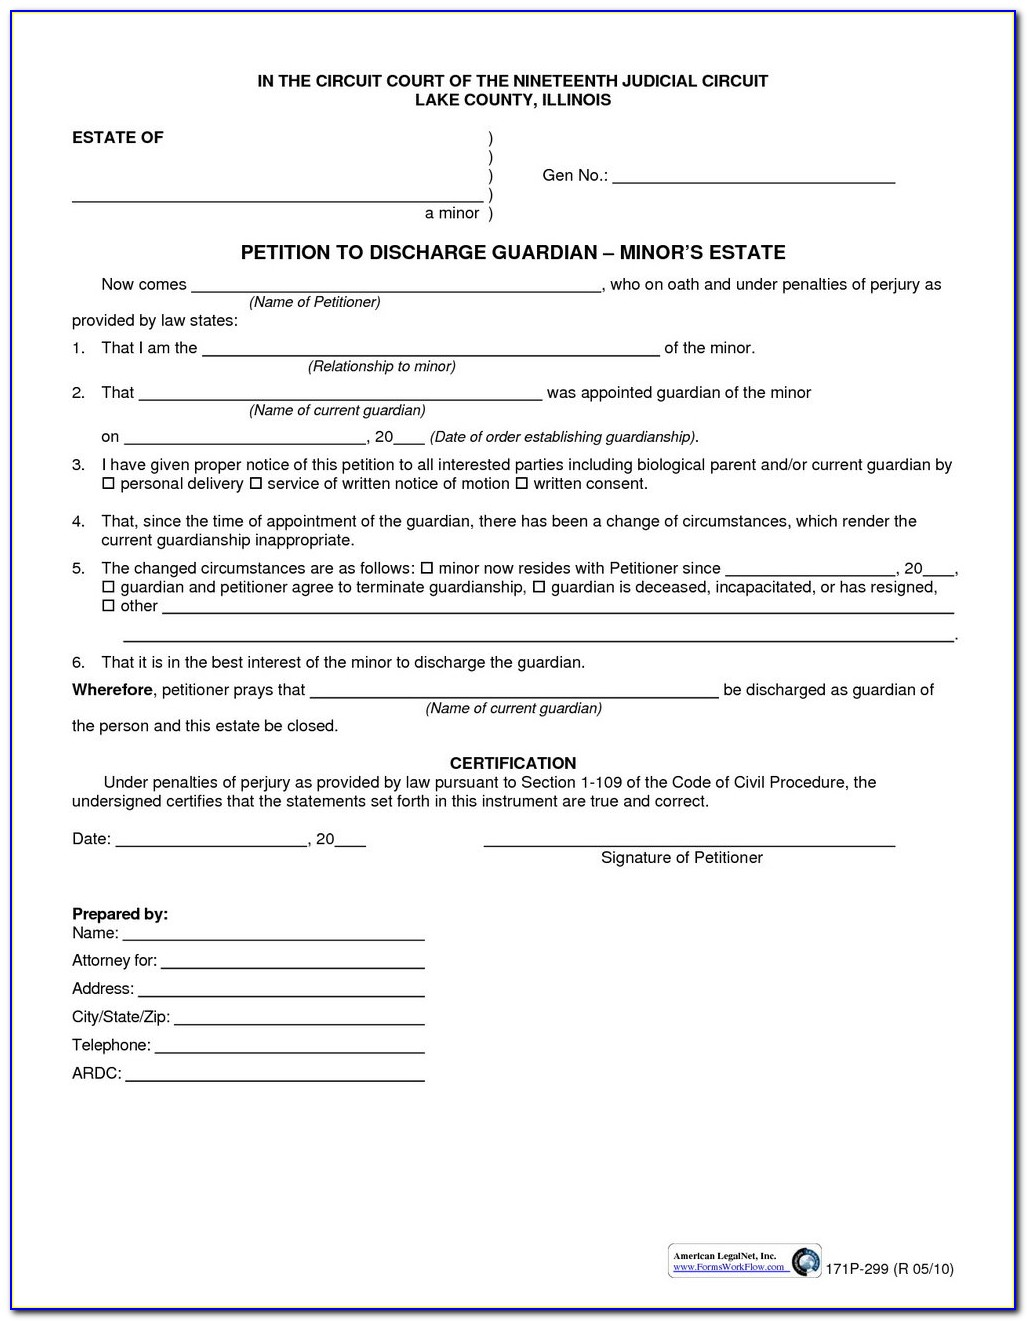 Dallas County Pro Se Divorce Forms